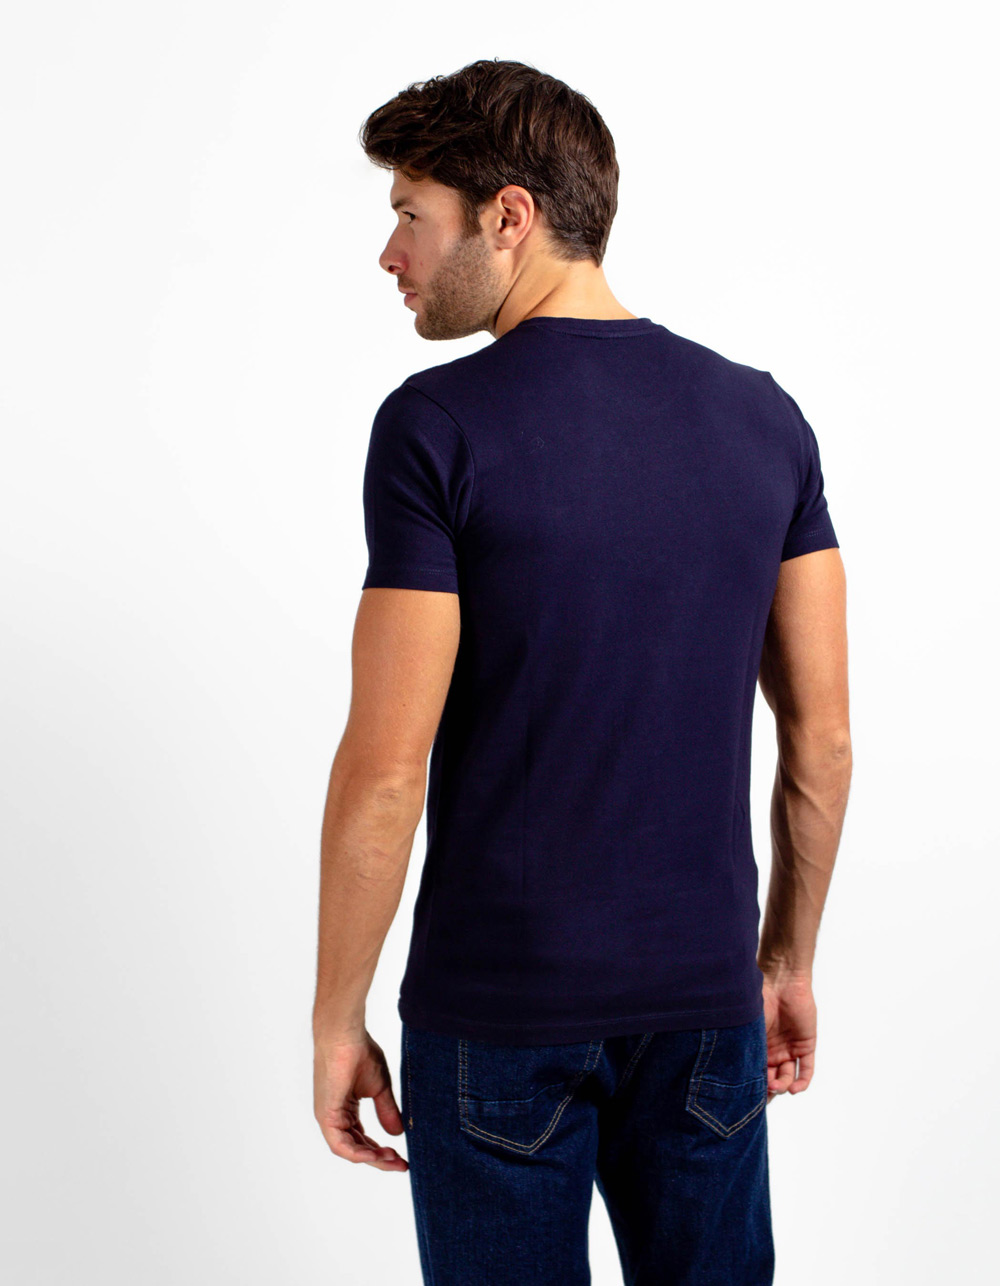 Navy blue short sleeve plain t-shirt - Backside